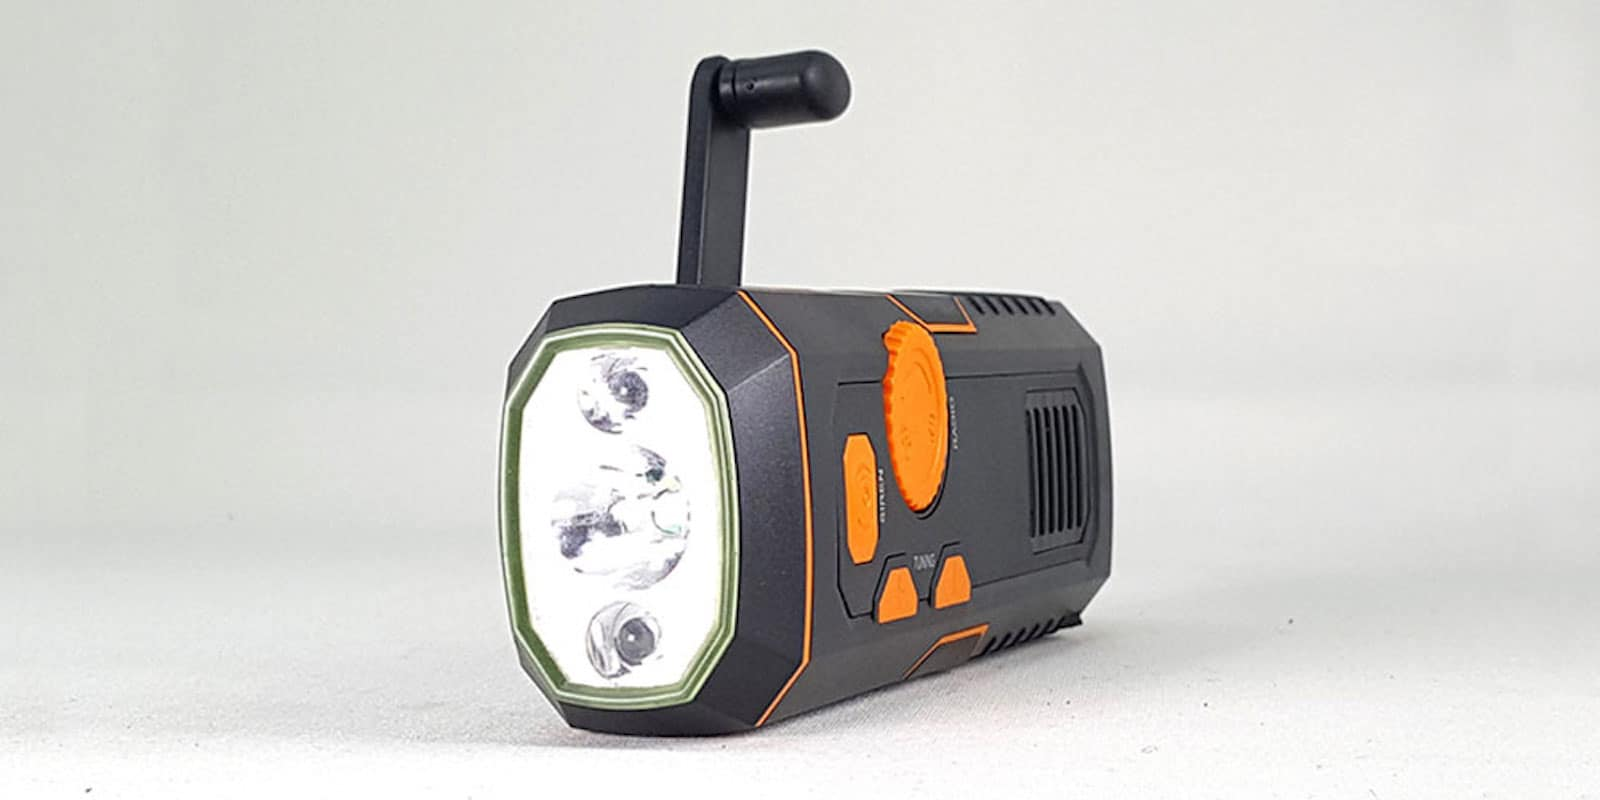 Be prepared for the unexpected with this self-powered lamp that doubles as an FM radio.